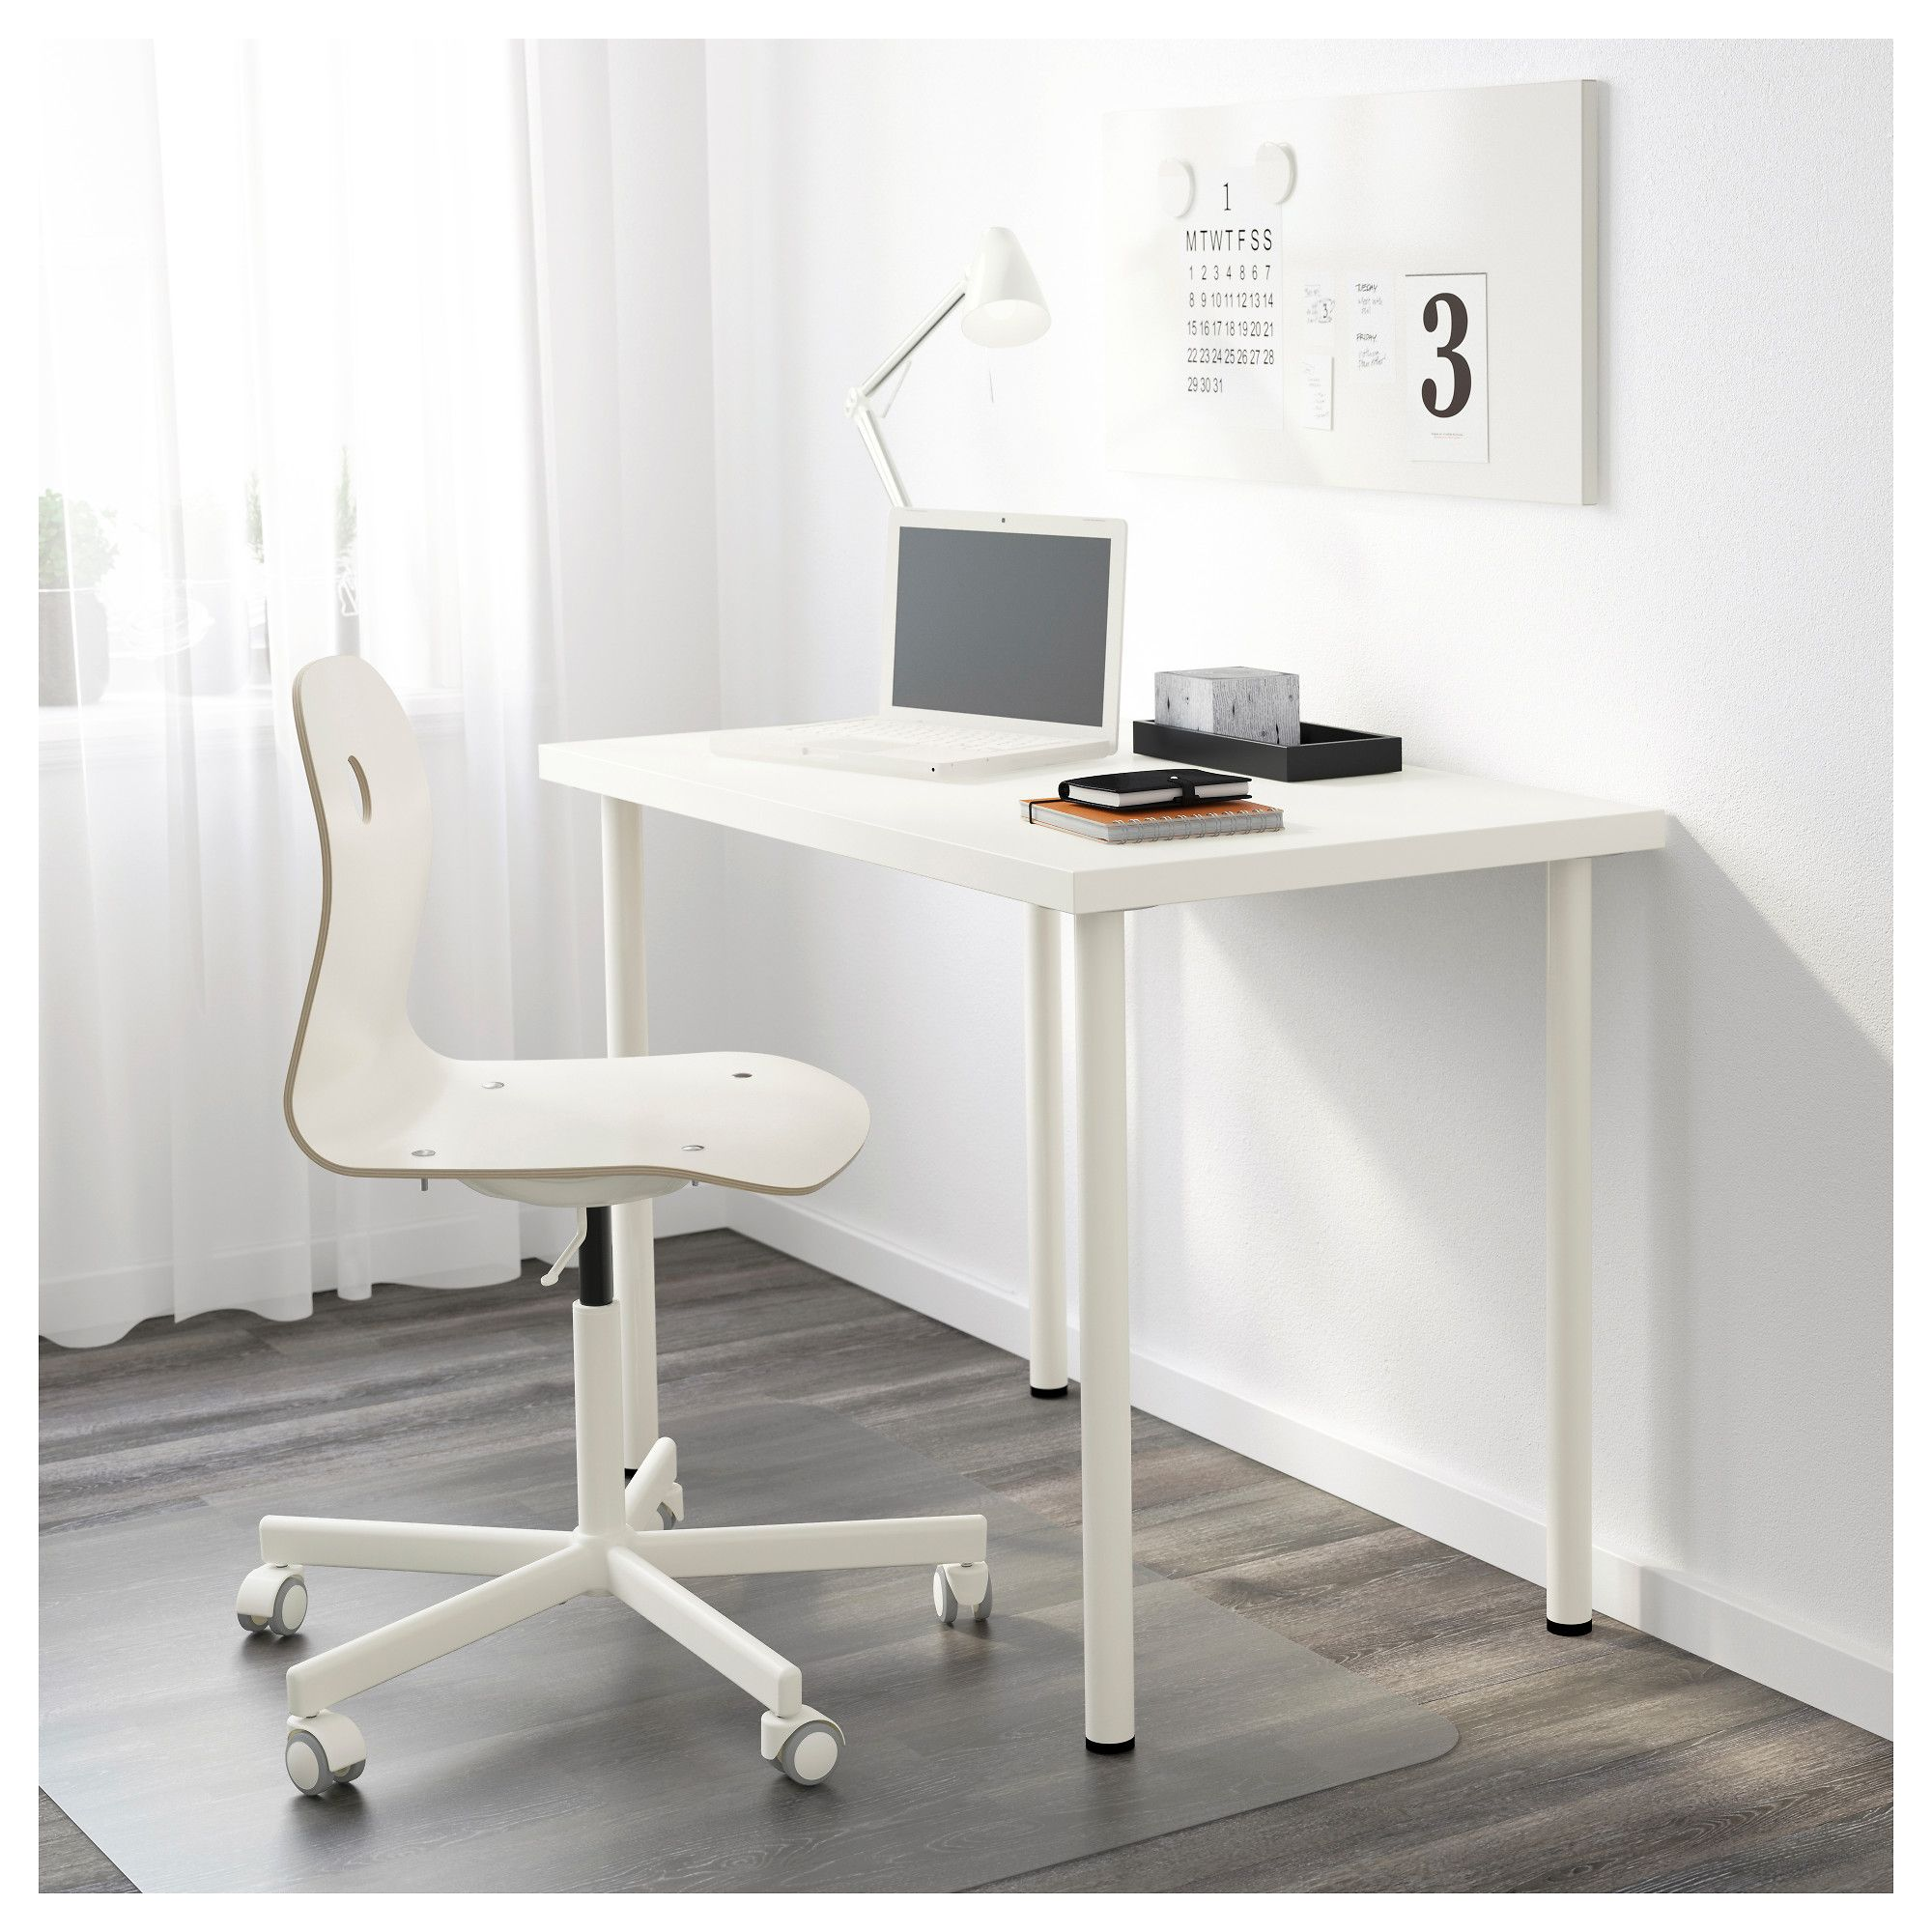 swivel snille catalog ca chair en office products ikea